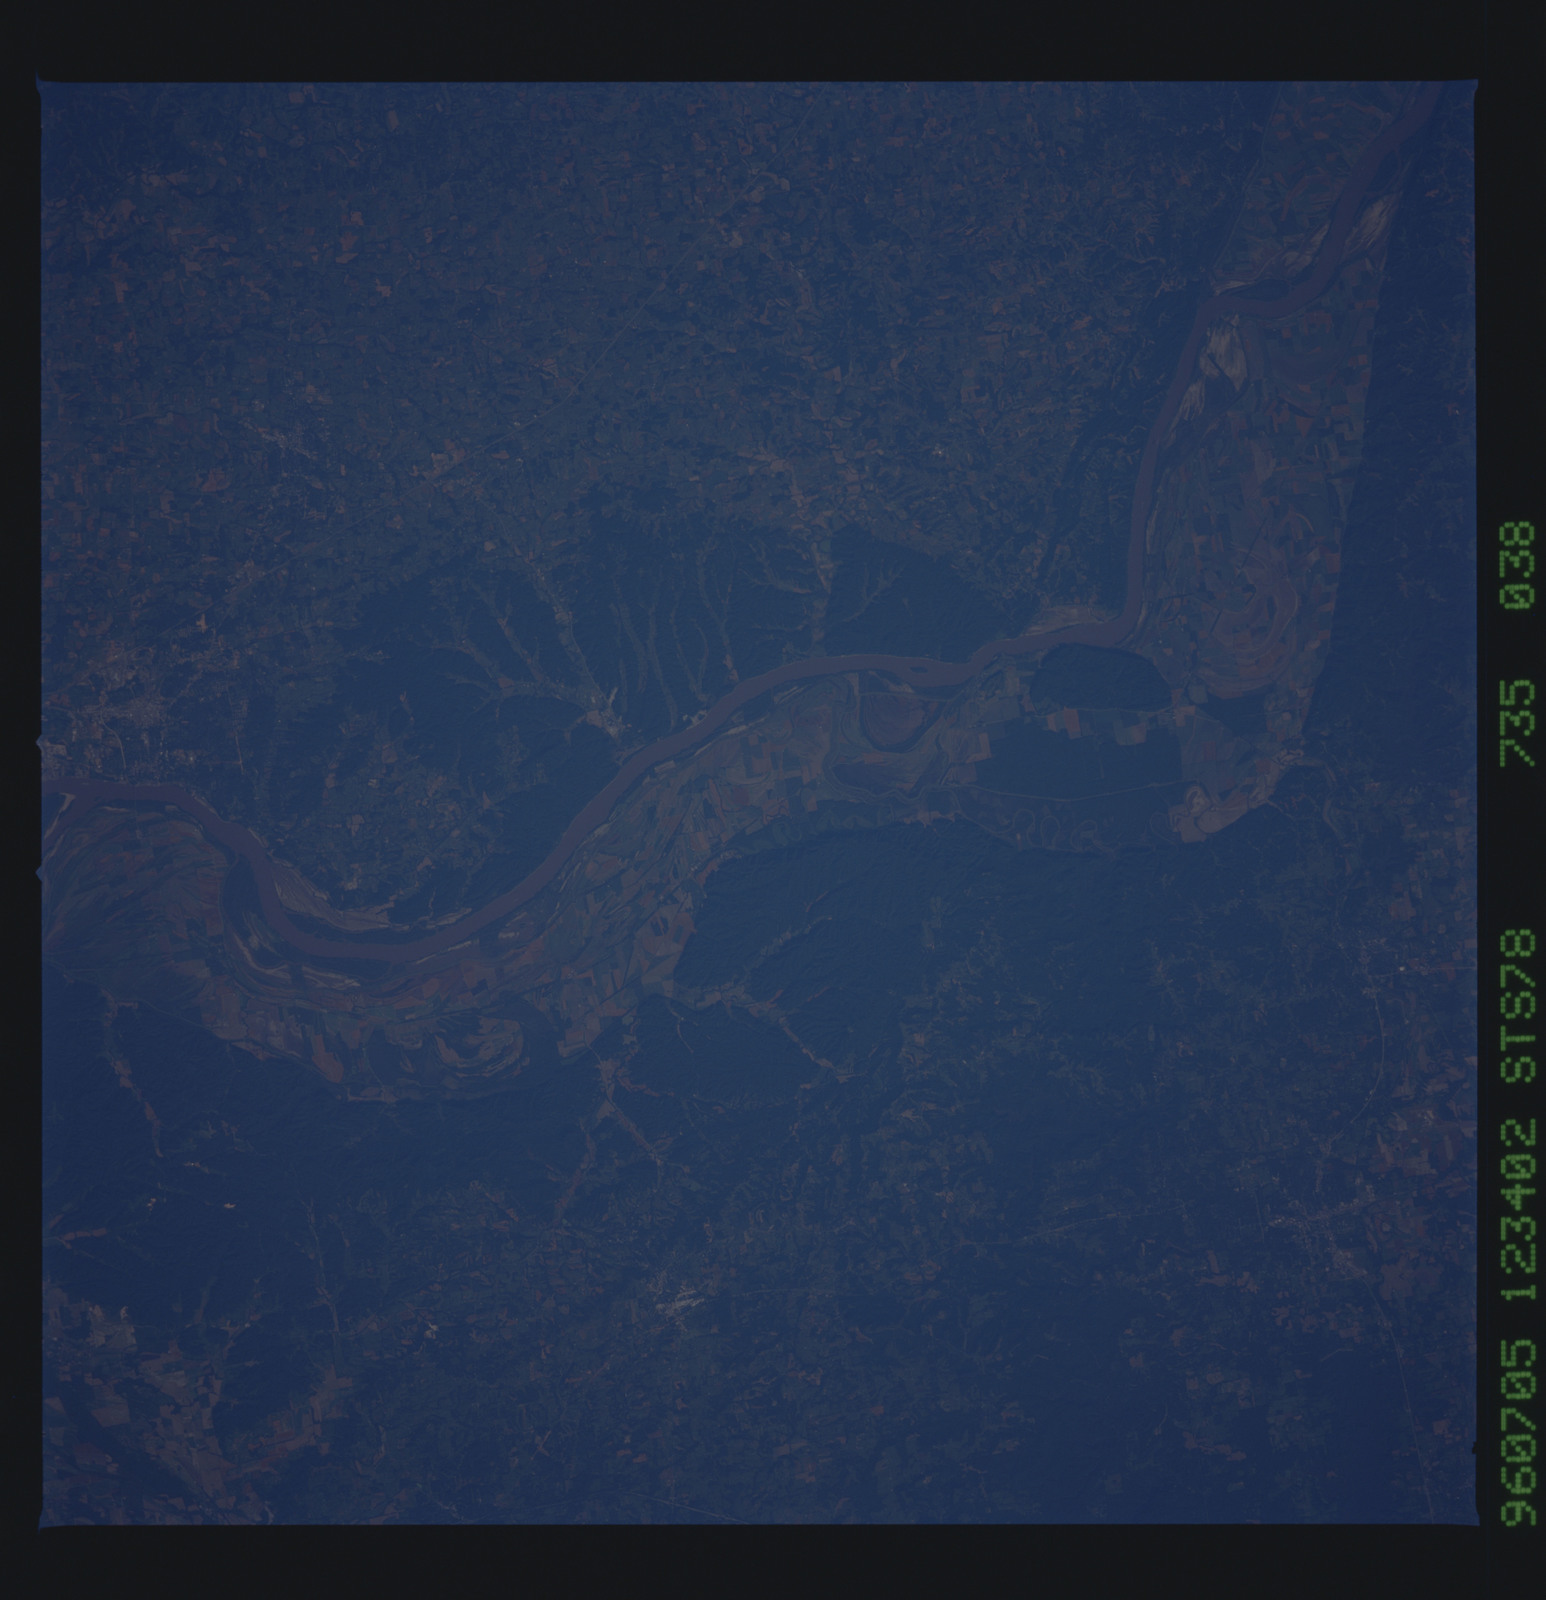 STS078-735-038 - STS-078 - Earth observations taken from Space Shuttle Columbia during STS-78 mission